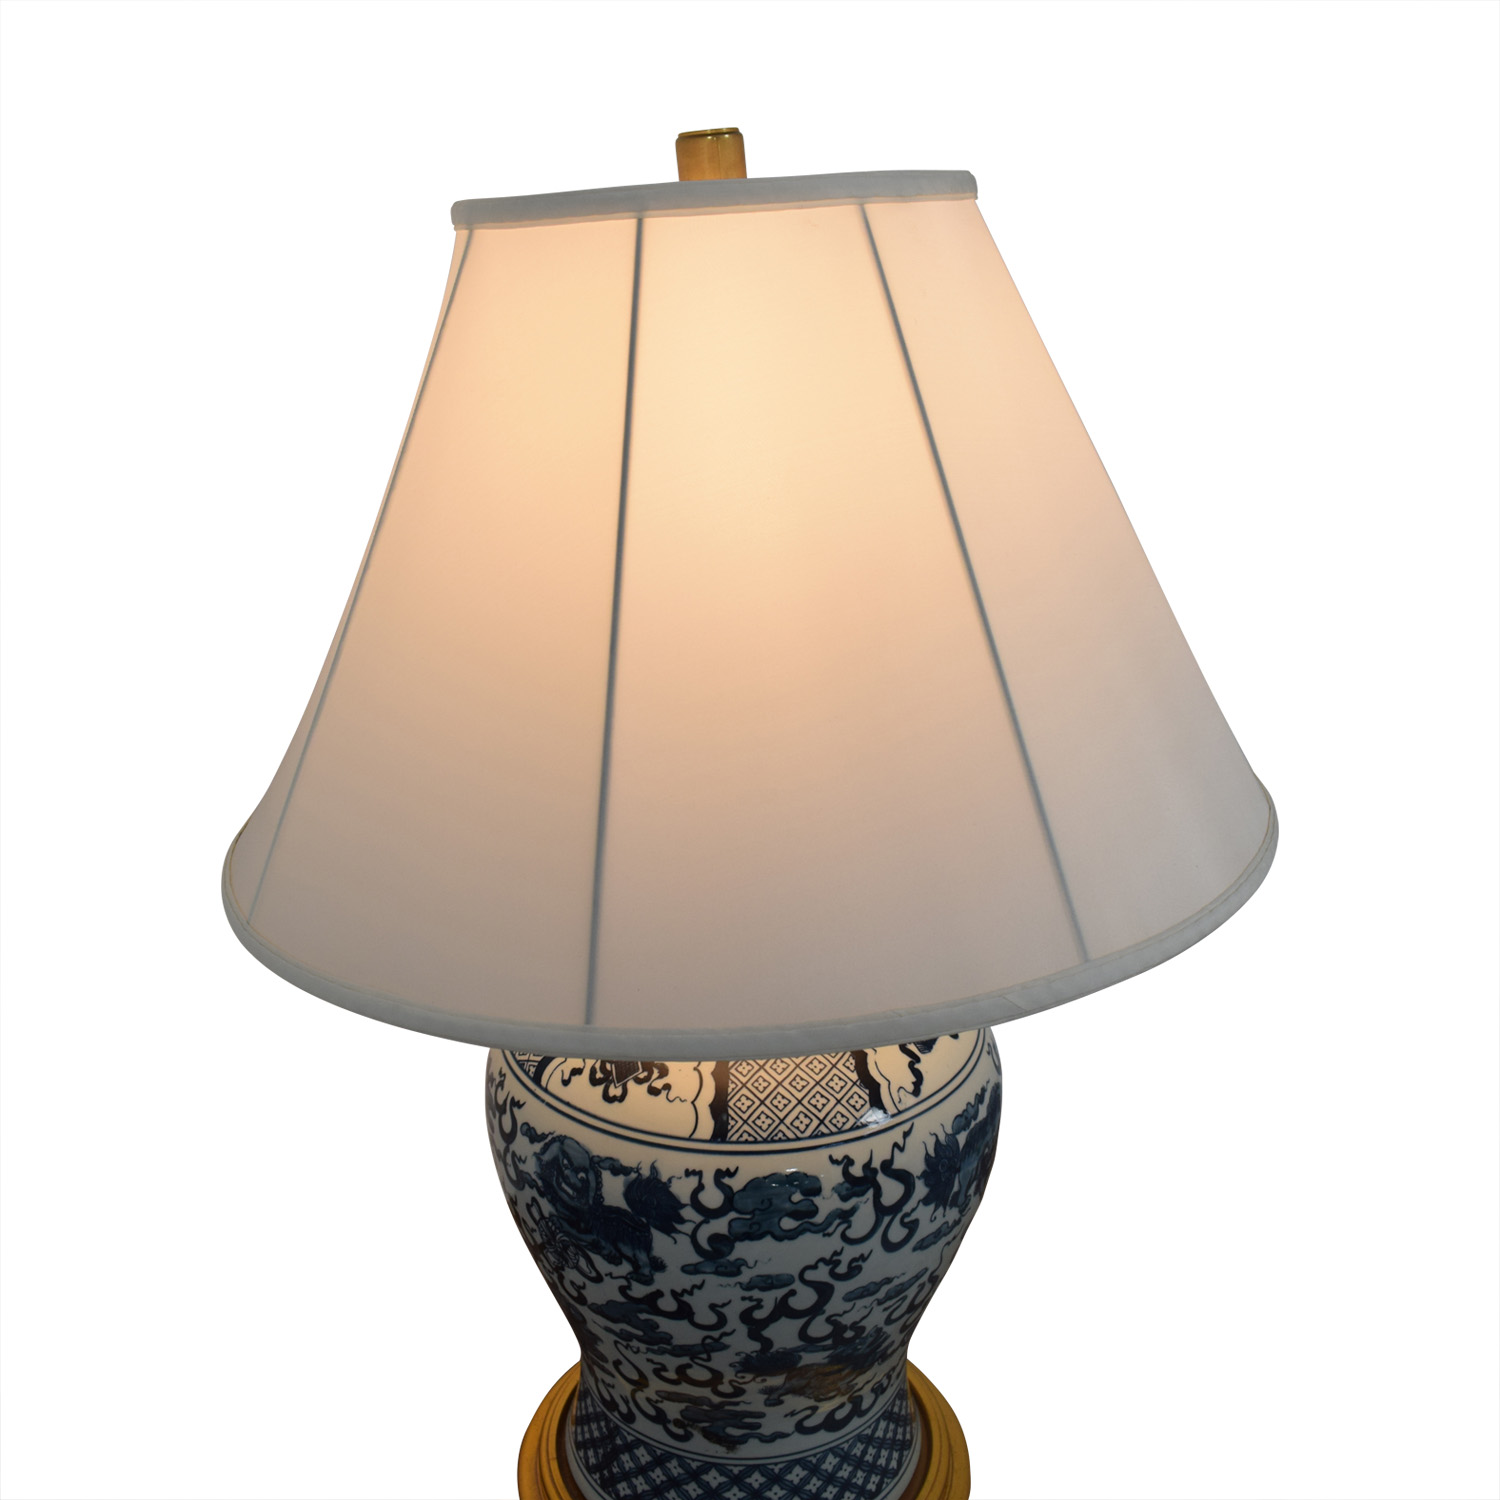 Asian Table Lamp 82 Off Ralph Lauren Home Ralph Lauren Asian Blue And White Table Lamp Decor